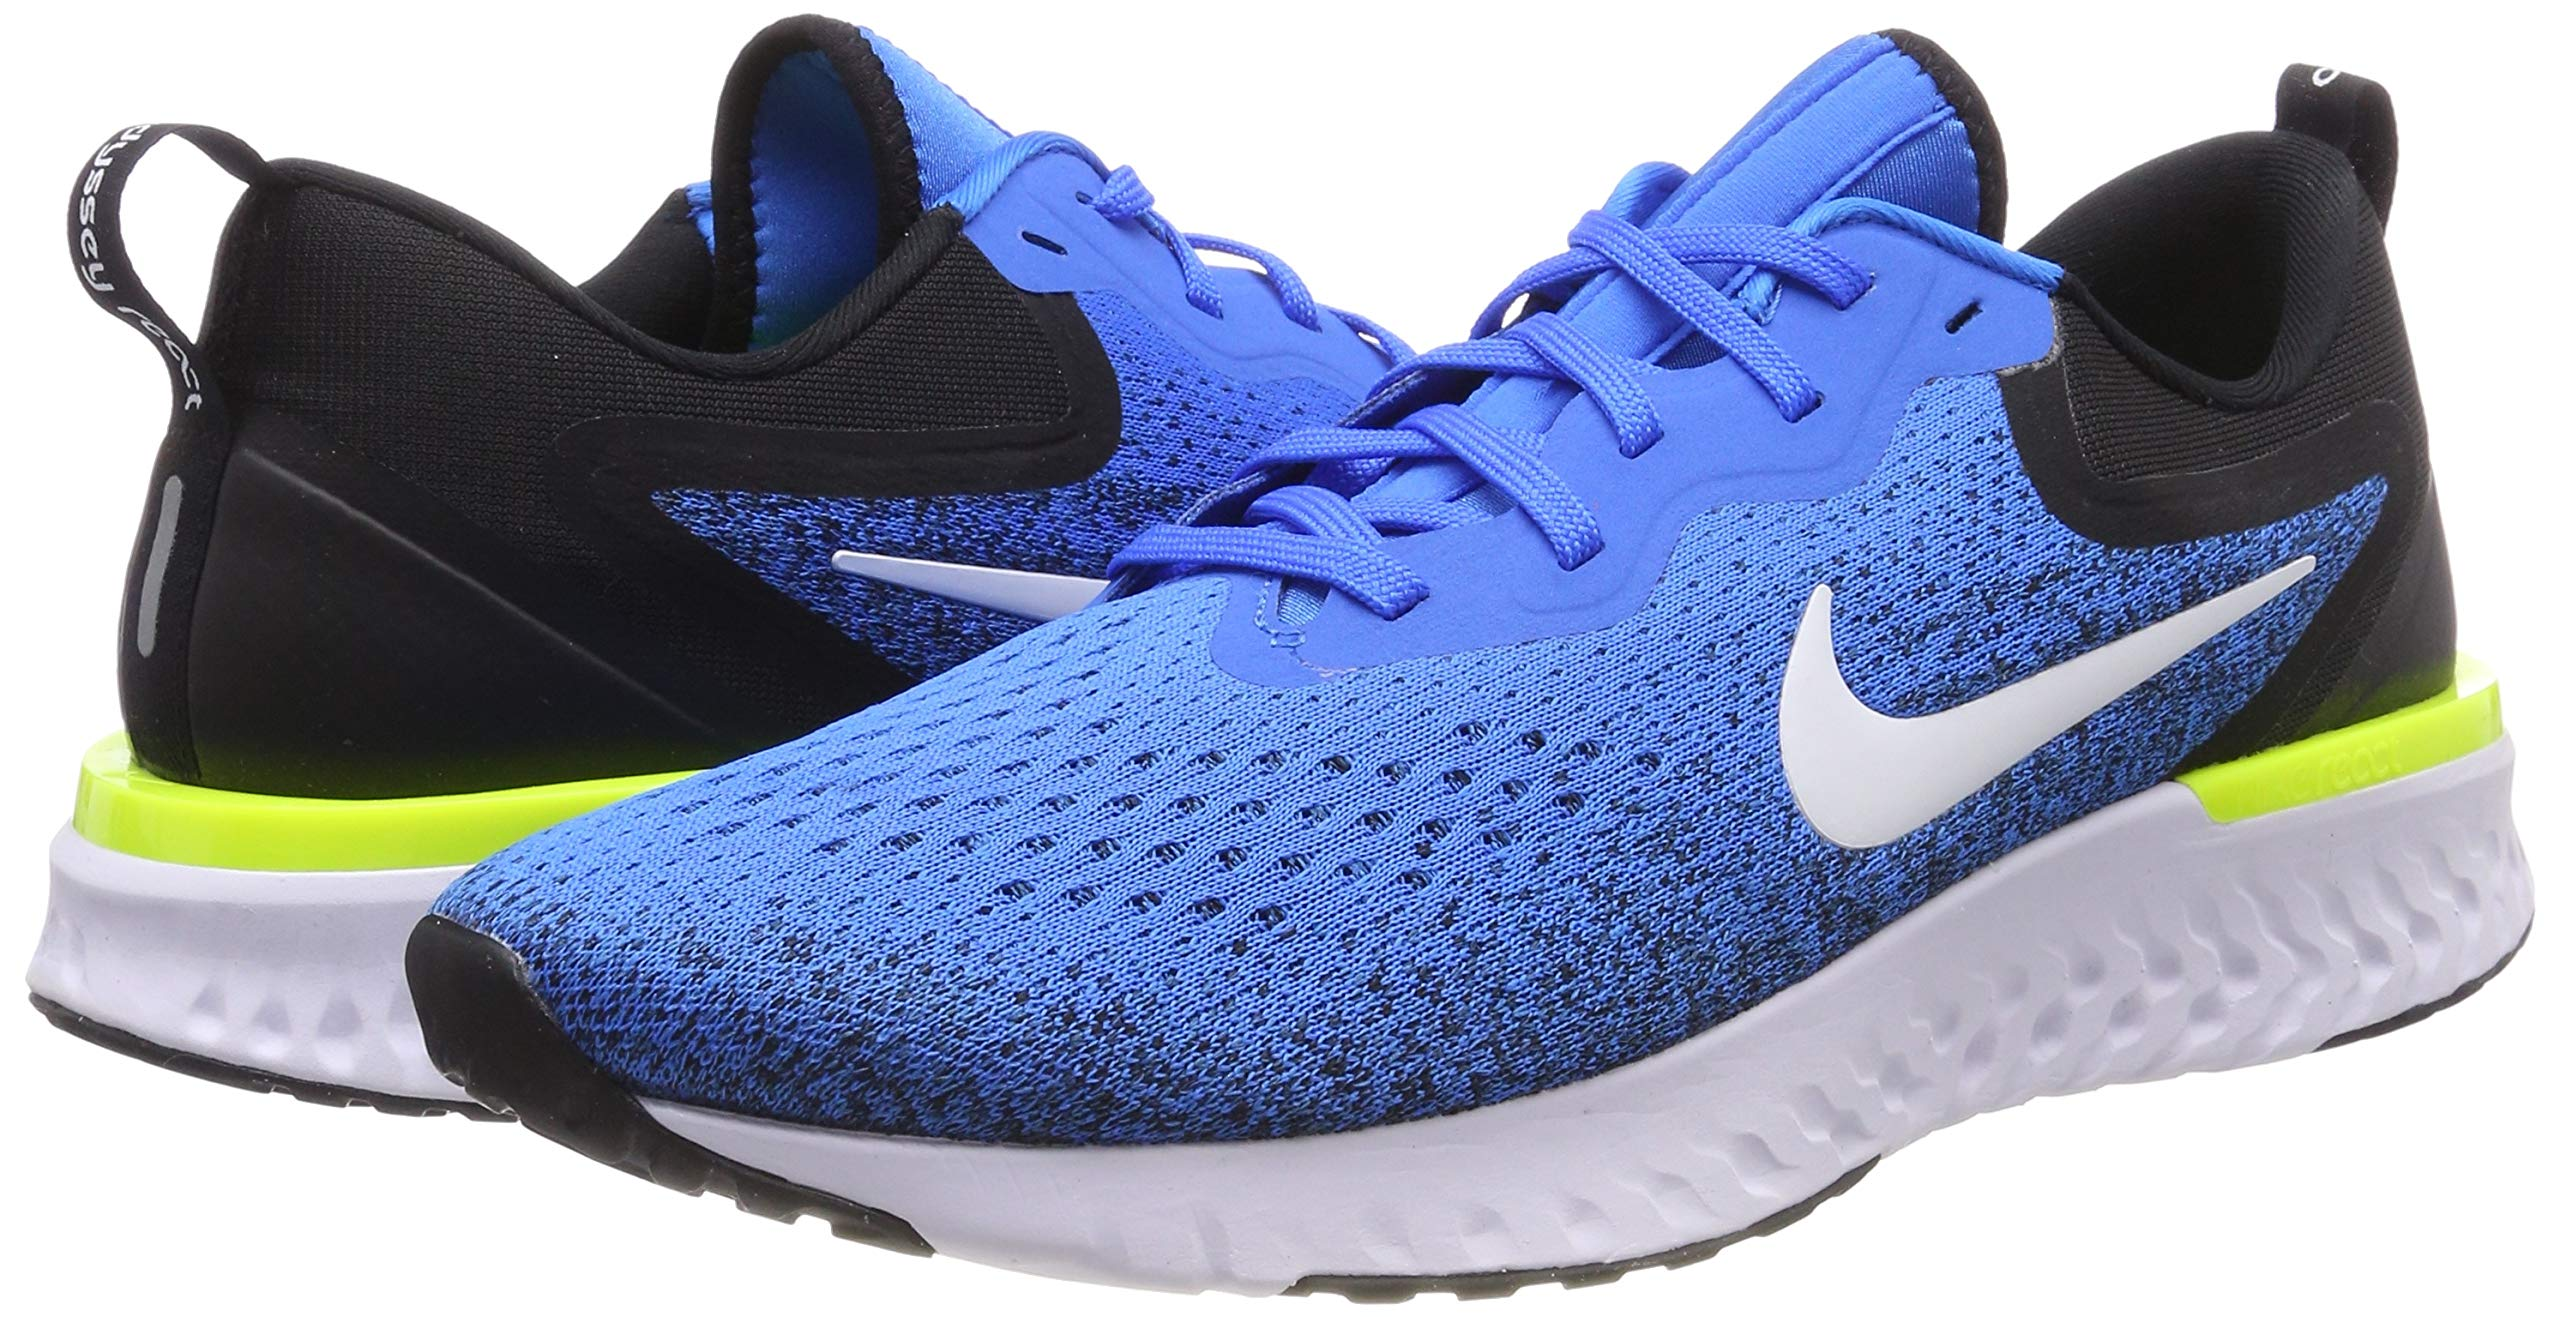 Nike Odyssey React Men's Running Shoe Green Abyss/Volt-Blue Force-White 7.5 by Nike (Image #5)